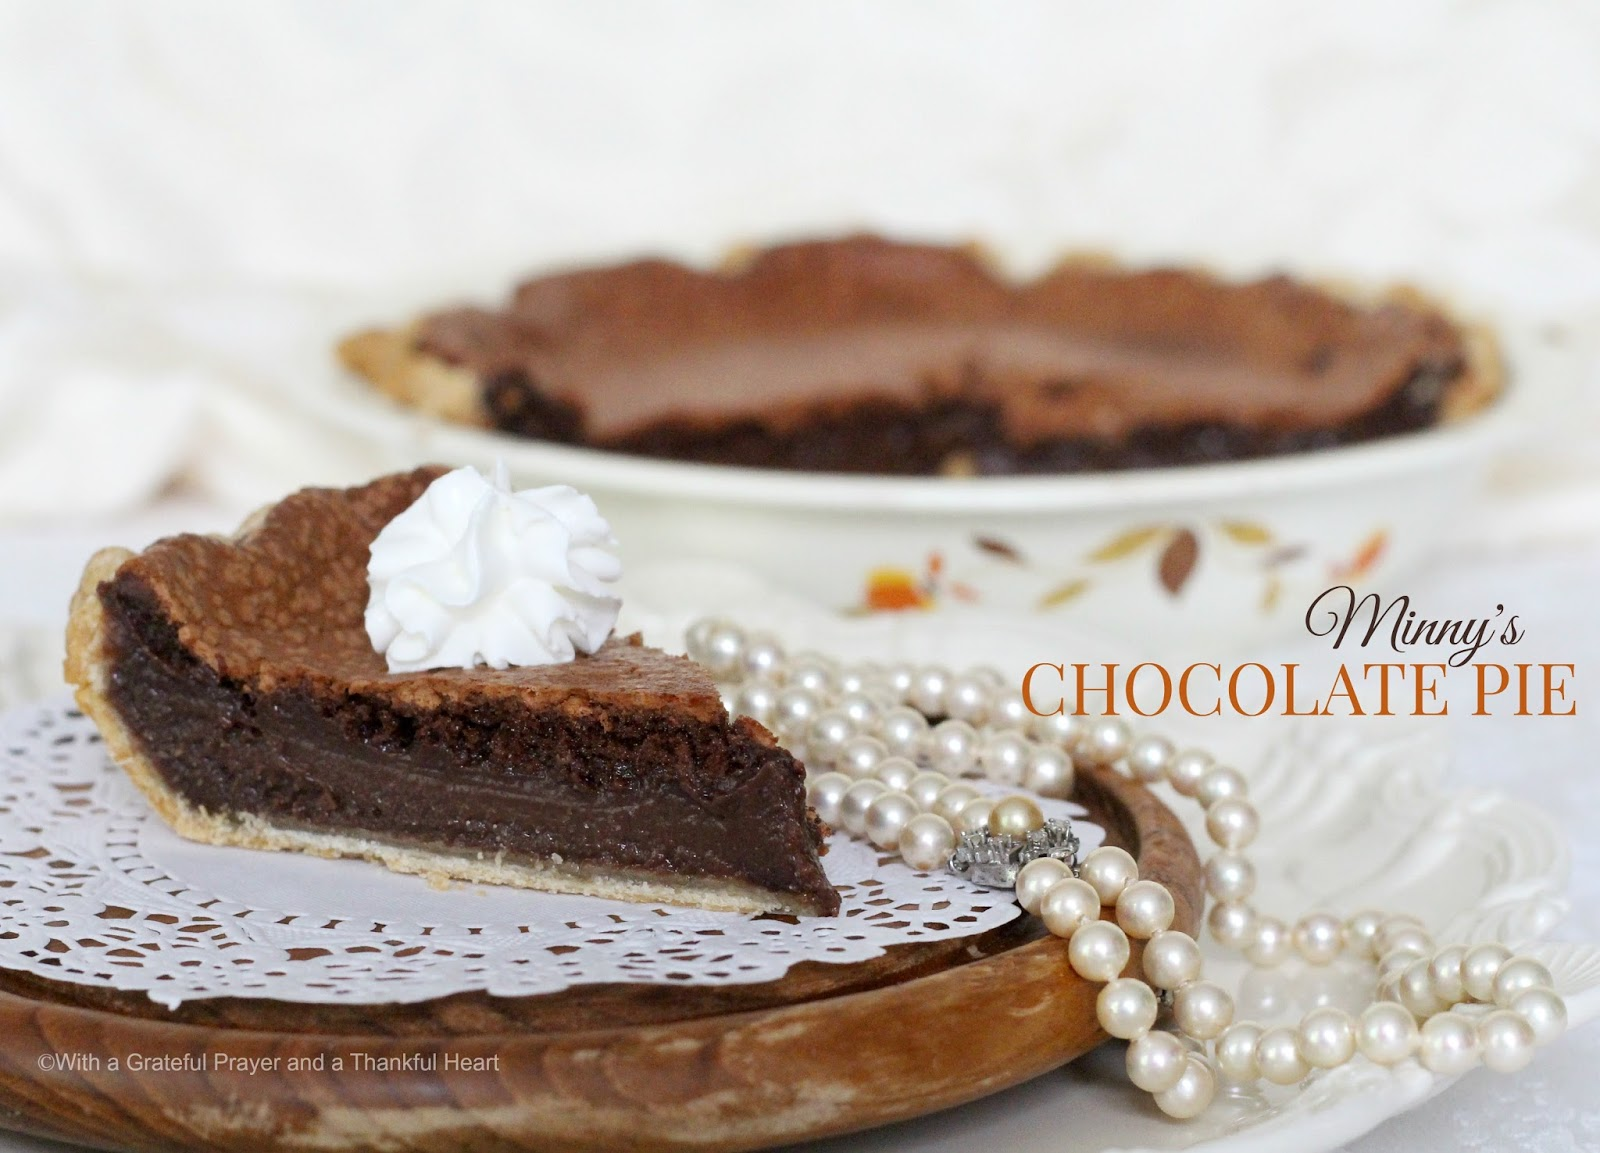 Two Chocolate Pie Recipes from The Help - Grateful Prayer ...